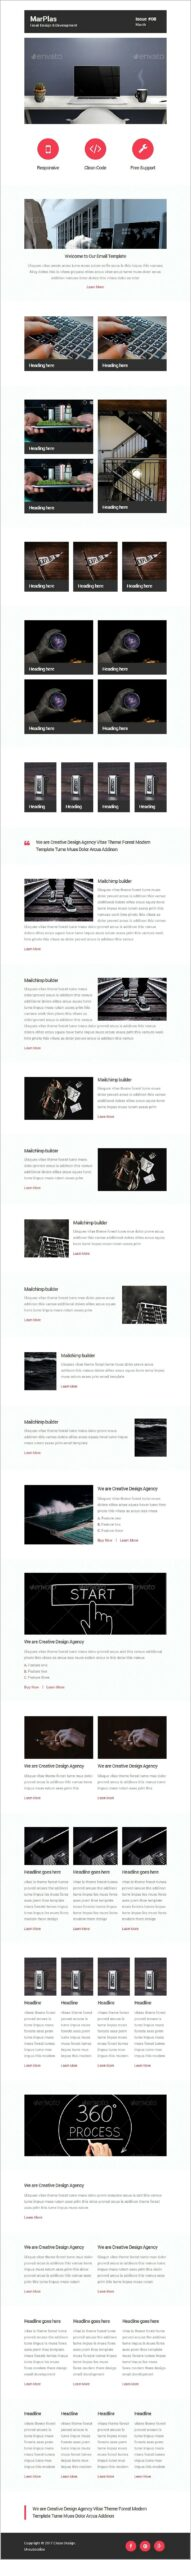 Mobile Responsive Email Template Design